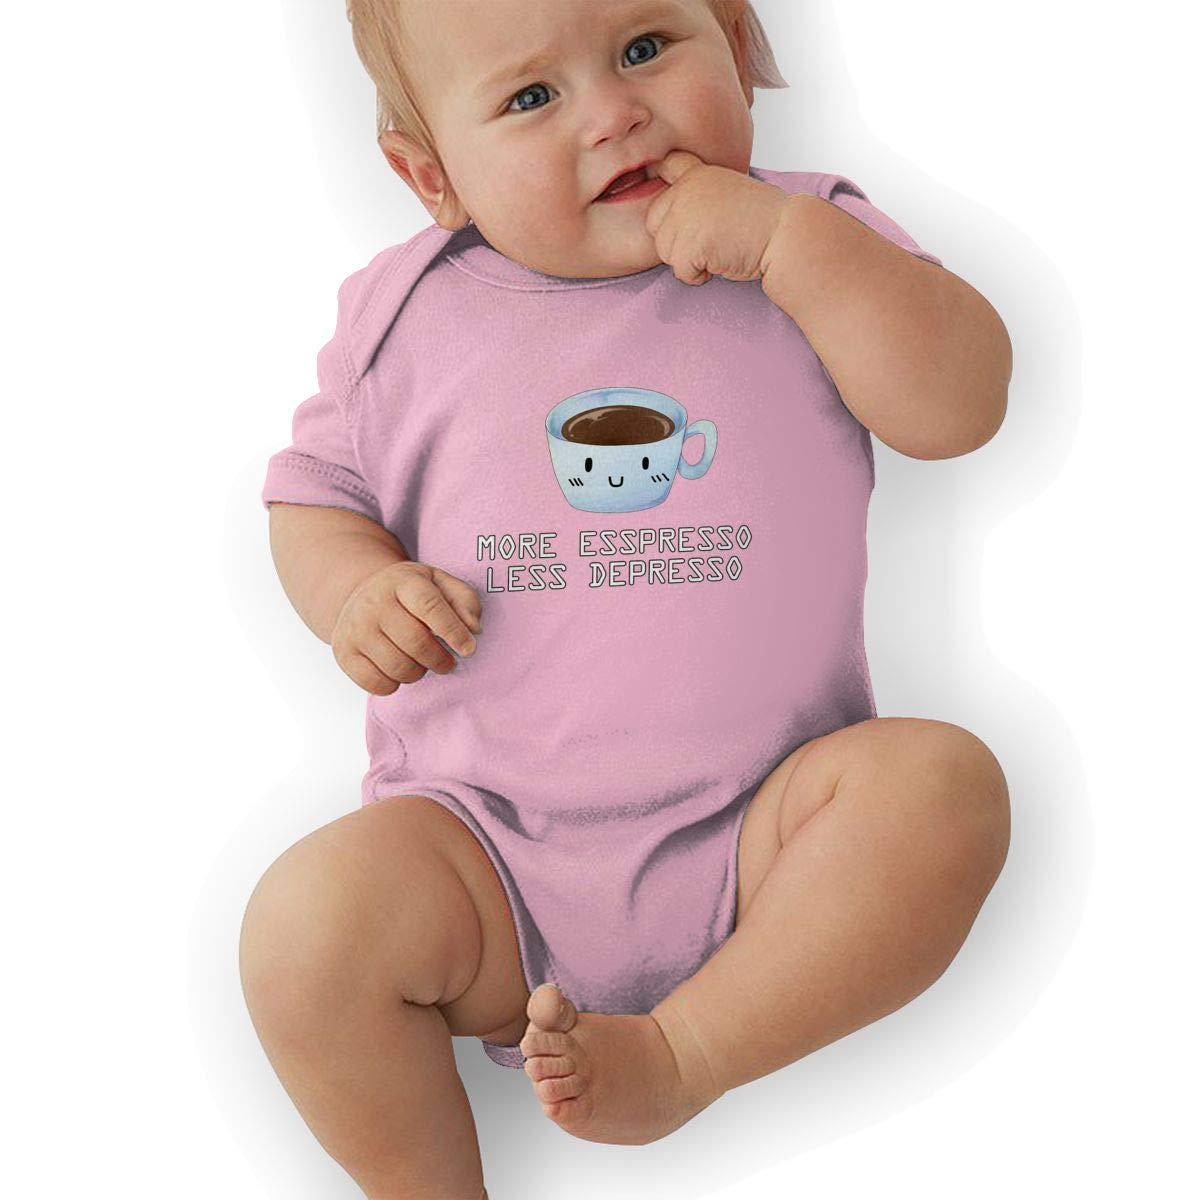 Toddler Baby Girls Bodysuit Short-Sleeve Onesie More Espresso Less Depresso Print Outfit Autumn Pajamas